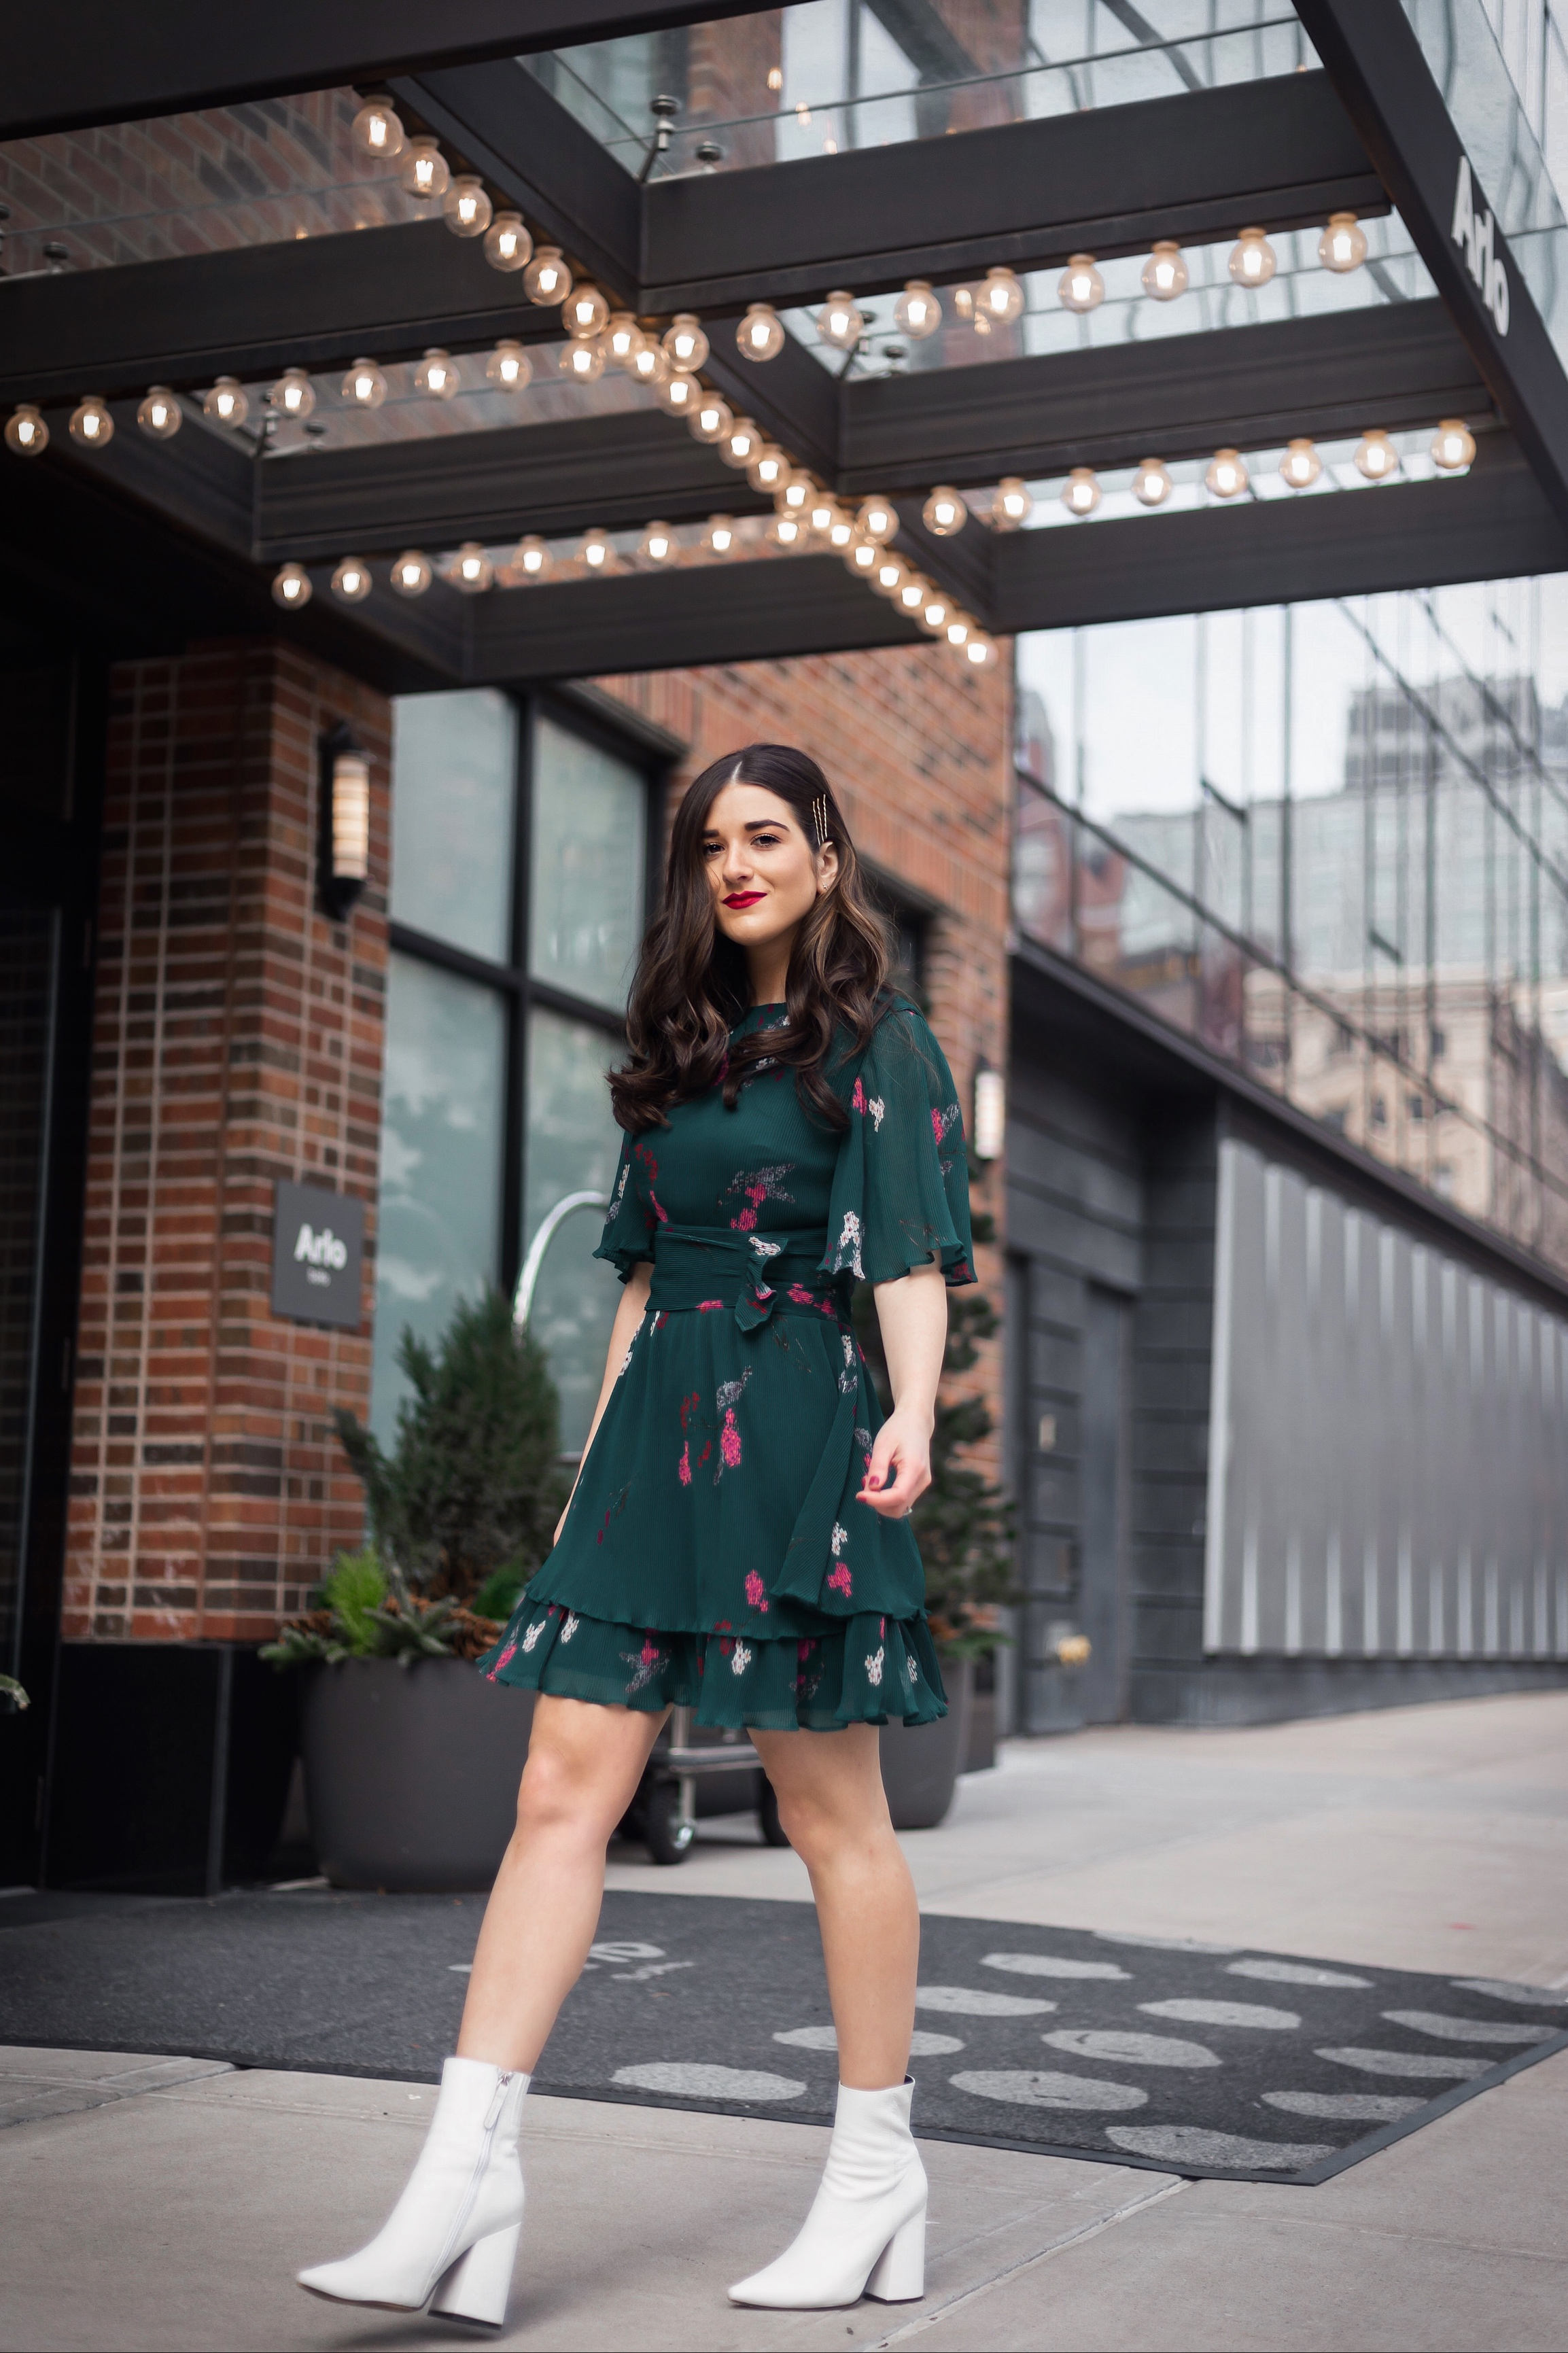 10 NYC Experiences Everyone Should Have Green Floral Dress White Booties Esther Santer Fashion Blog NYC Street Style Blogger Outfit OOTD Trendy Shopping Girl What How To  Wear Bobby Pins Hairstyle Fall Look Butterfly Sleeves Keepsake Label Arlo Soho.JPG